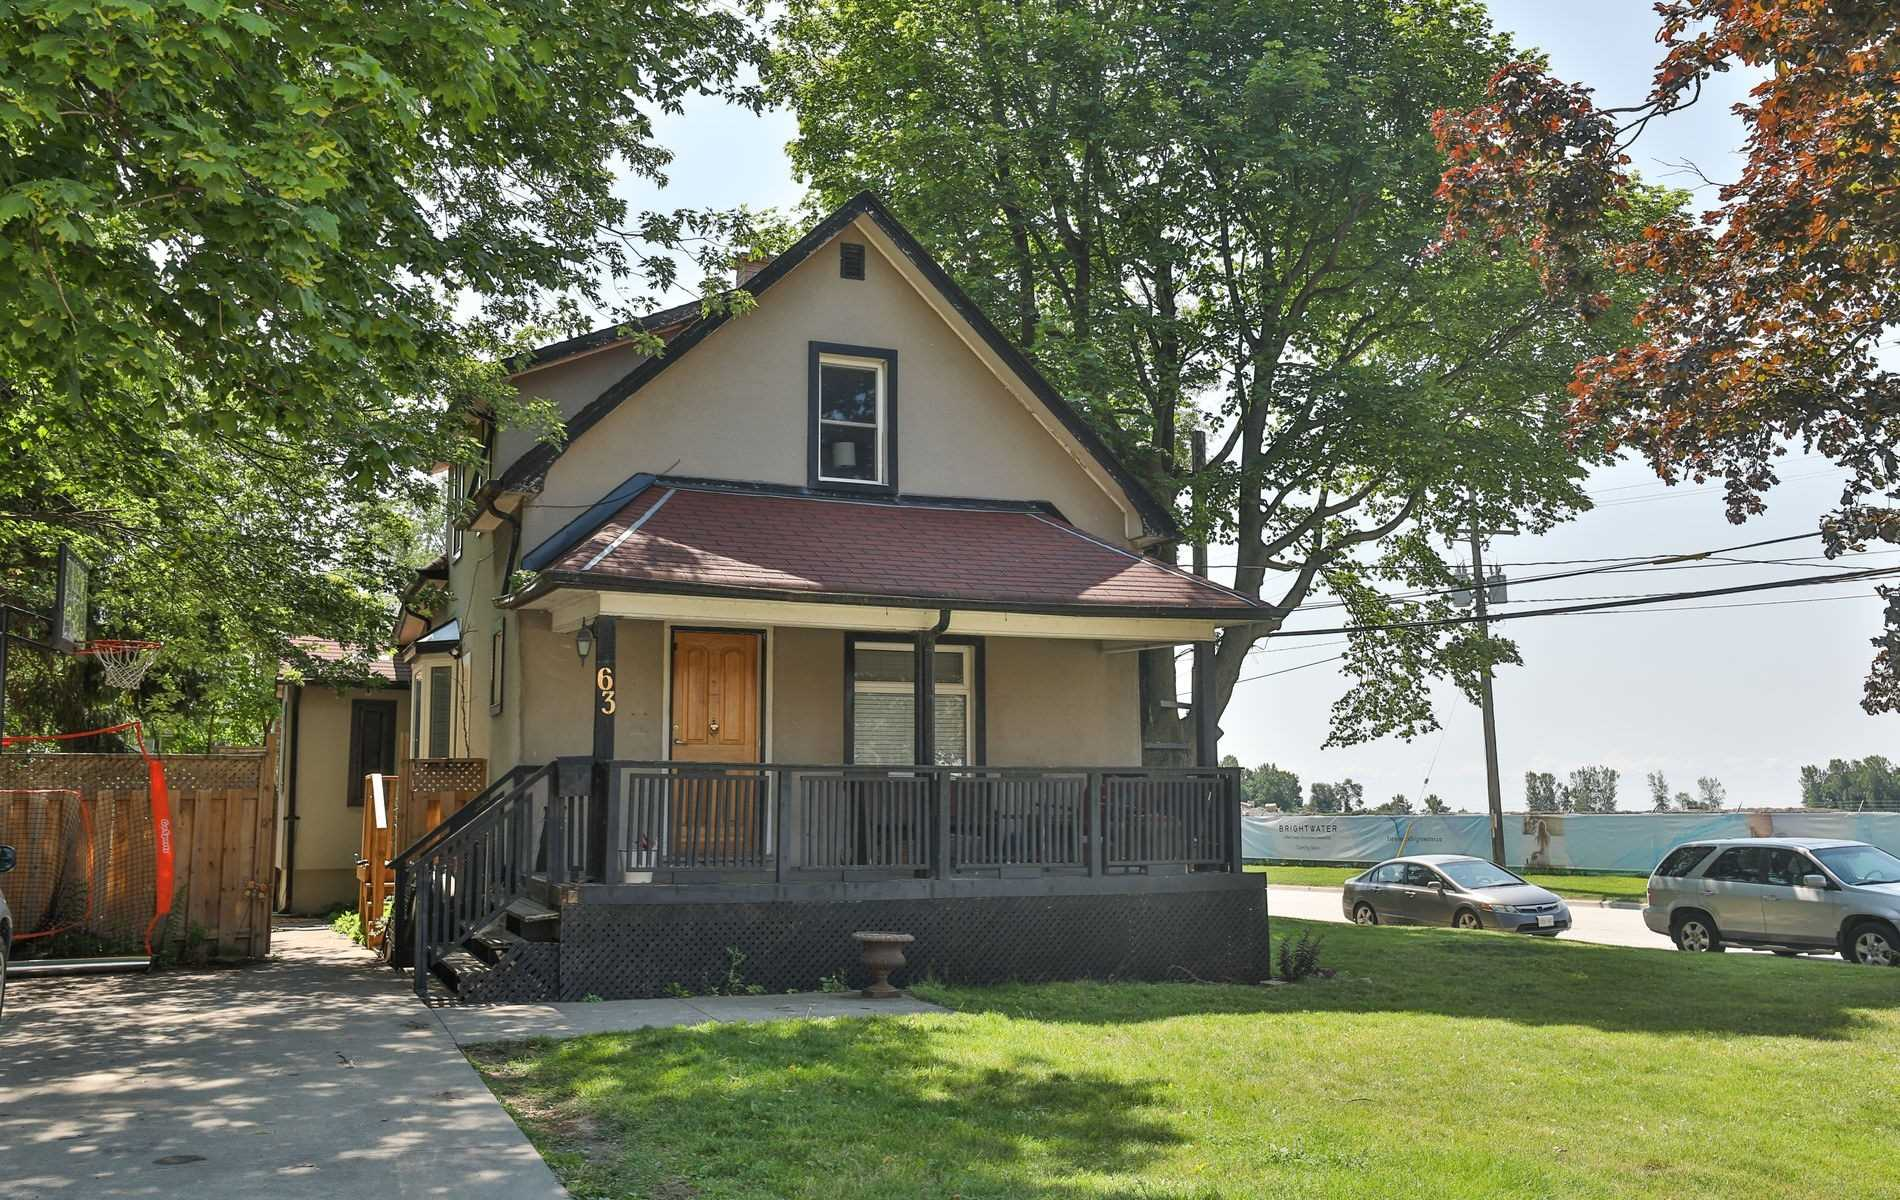 Detached house For Lease In Mississauga - 63 Port St, Mississauga, Ontario, Canada L5H1E2 , 1 Bedroom Bedrooms, ,1 BathroomBathrooms,Detached,For Lease,Lower,Port